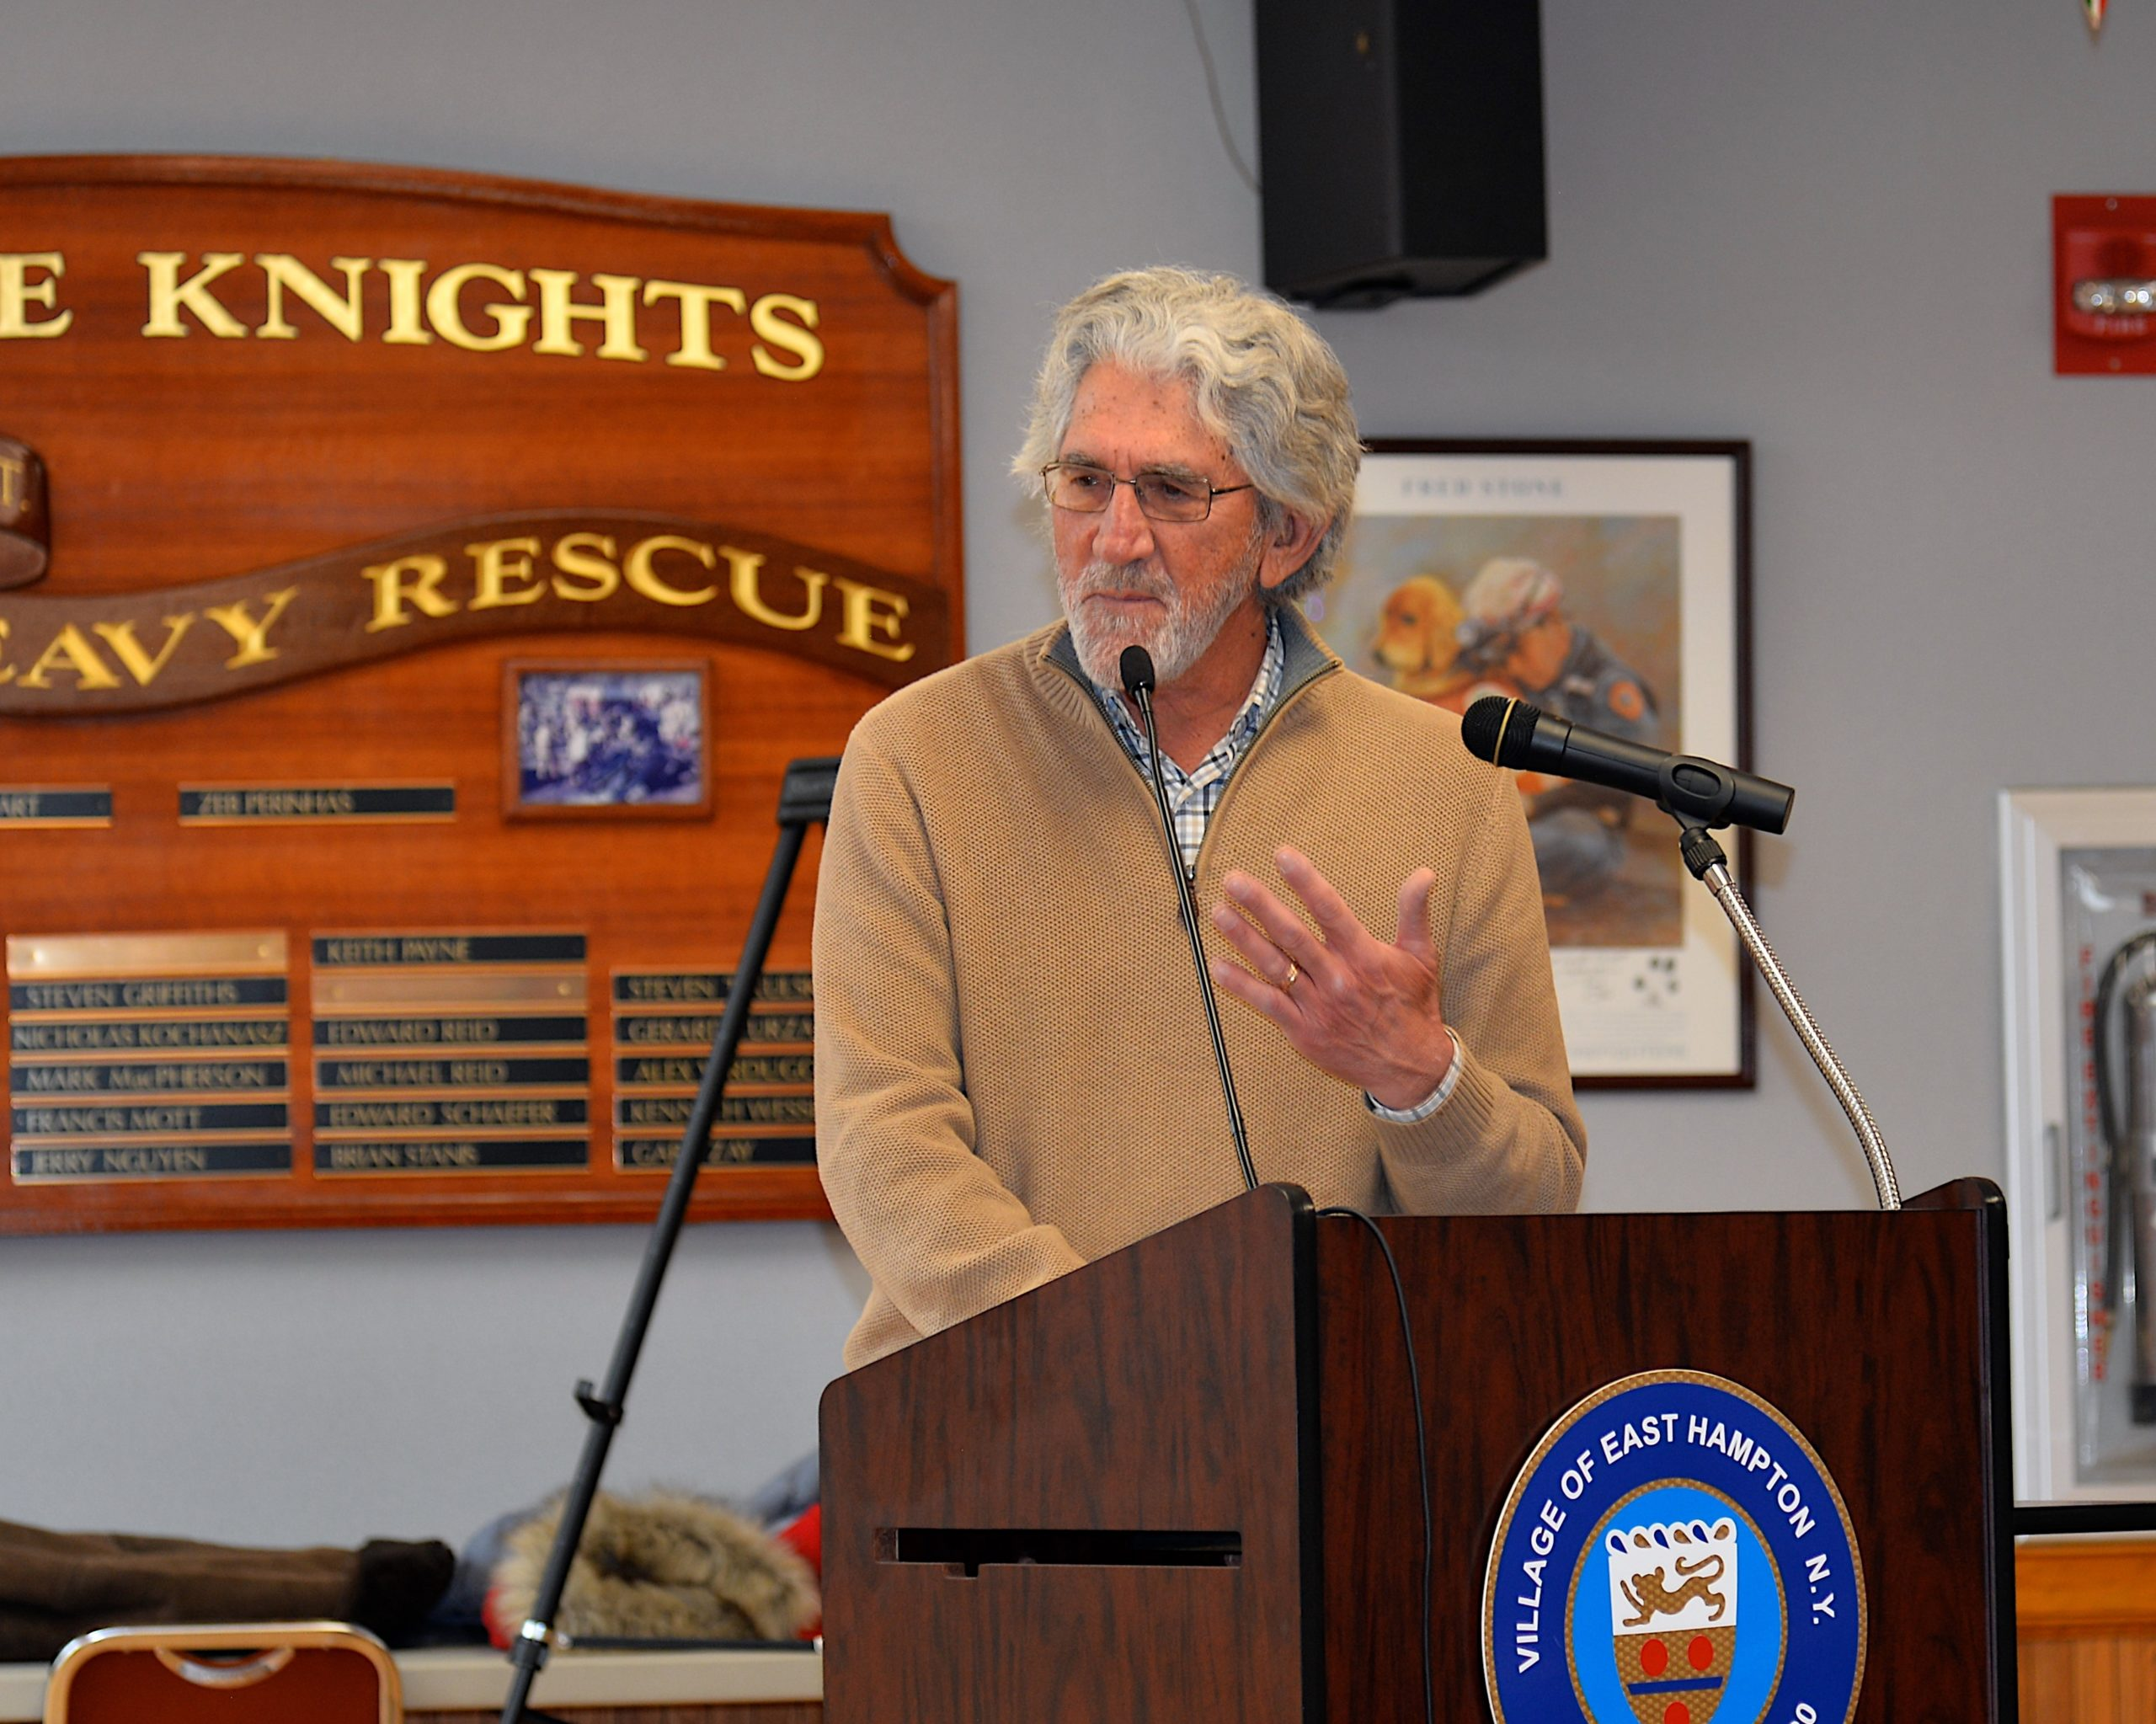 Larry Cantwell, a longtime village administrator who said he had a